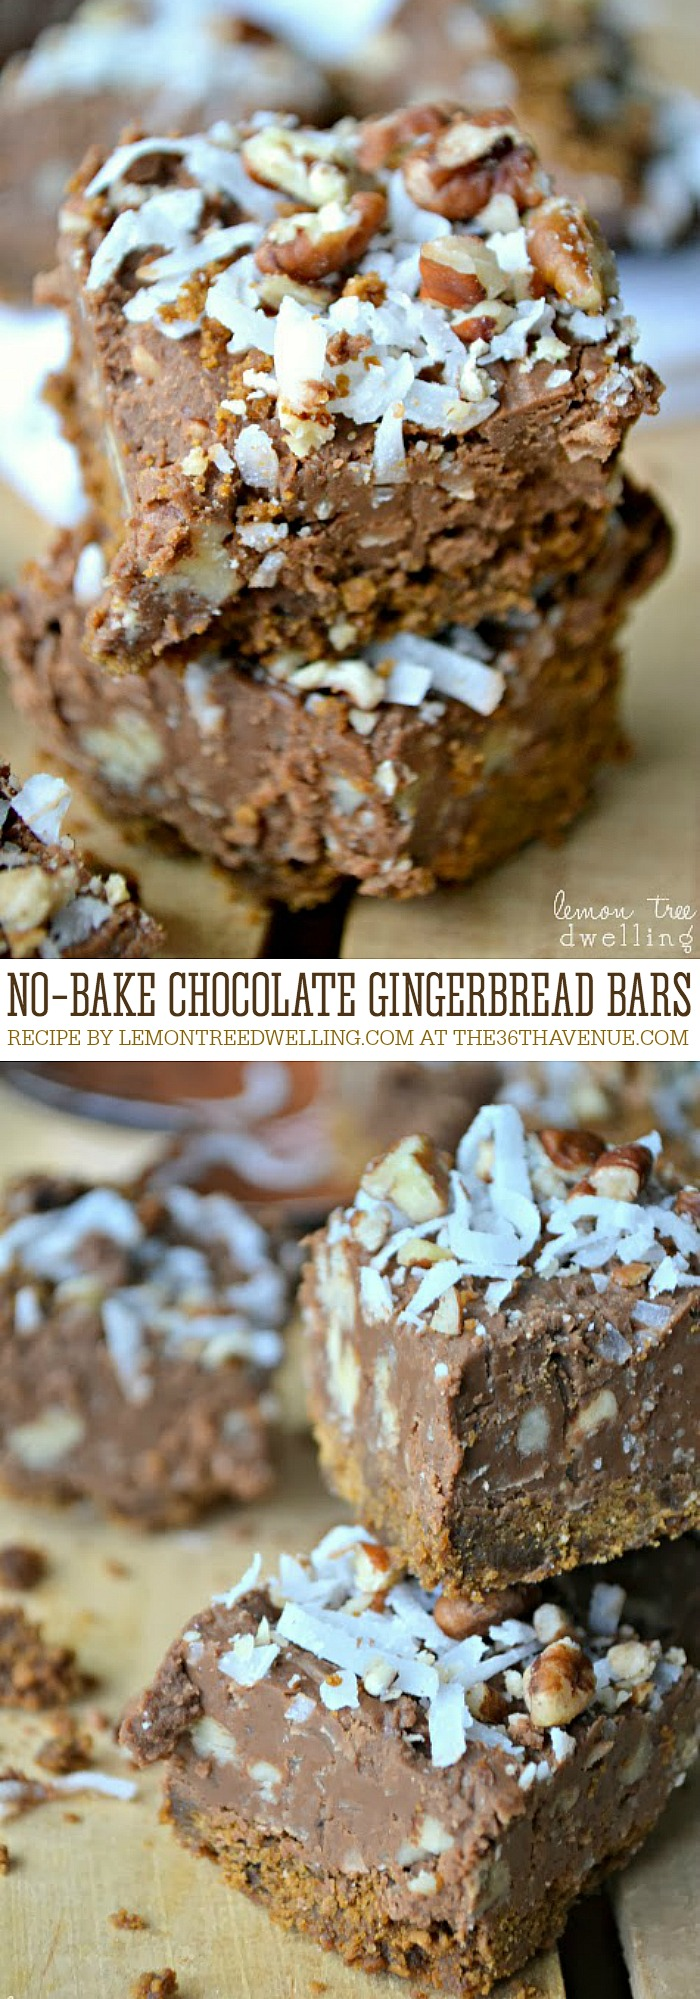 Christmas Recipes - These No Bake Chocolate Gingerbread Bars are delicious. Perfect for Christmas Parties, desserts, and edible christmas gifts. PIN IT NOW and make them later!